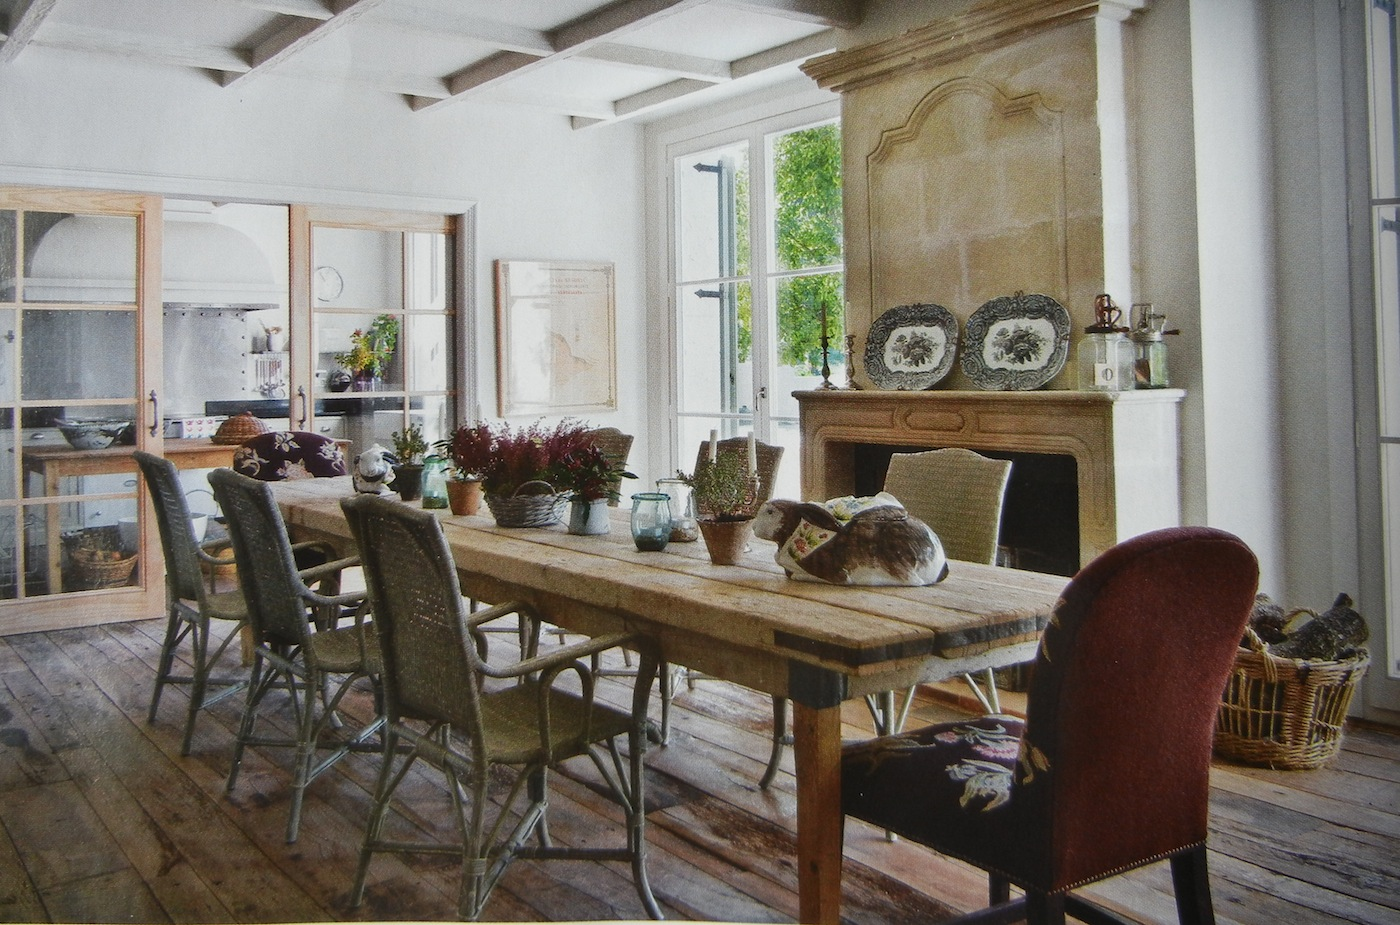 Auction decorating rustic dining tables in spain for Rustic dining room